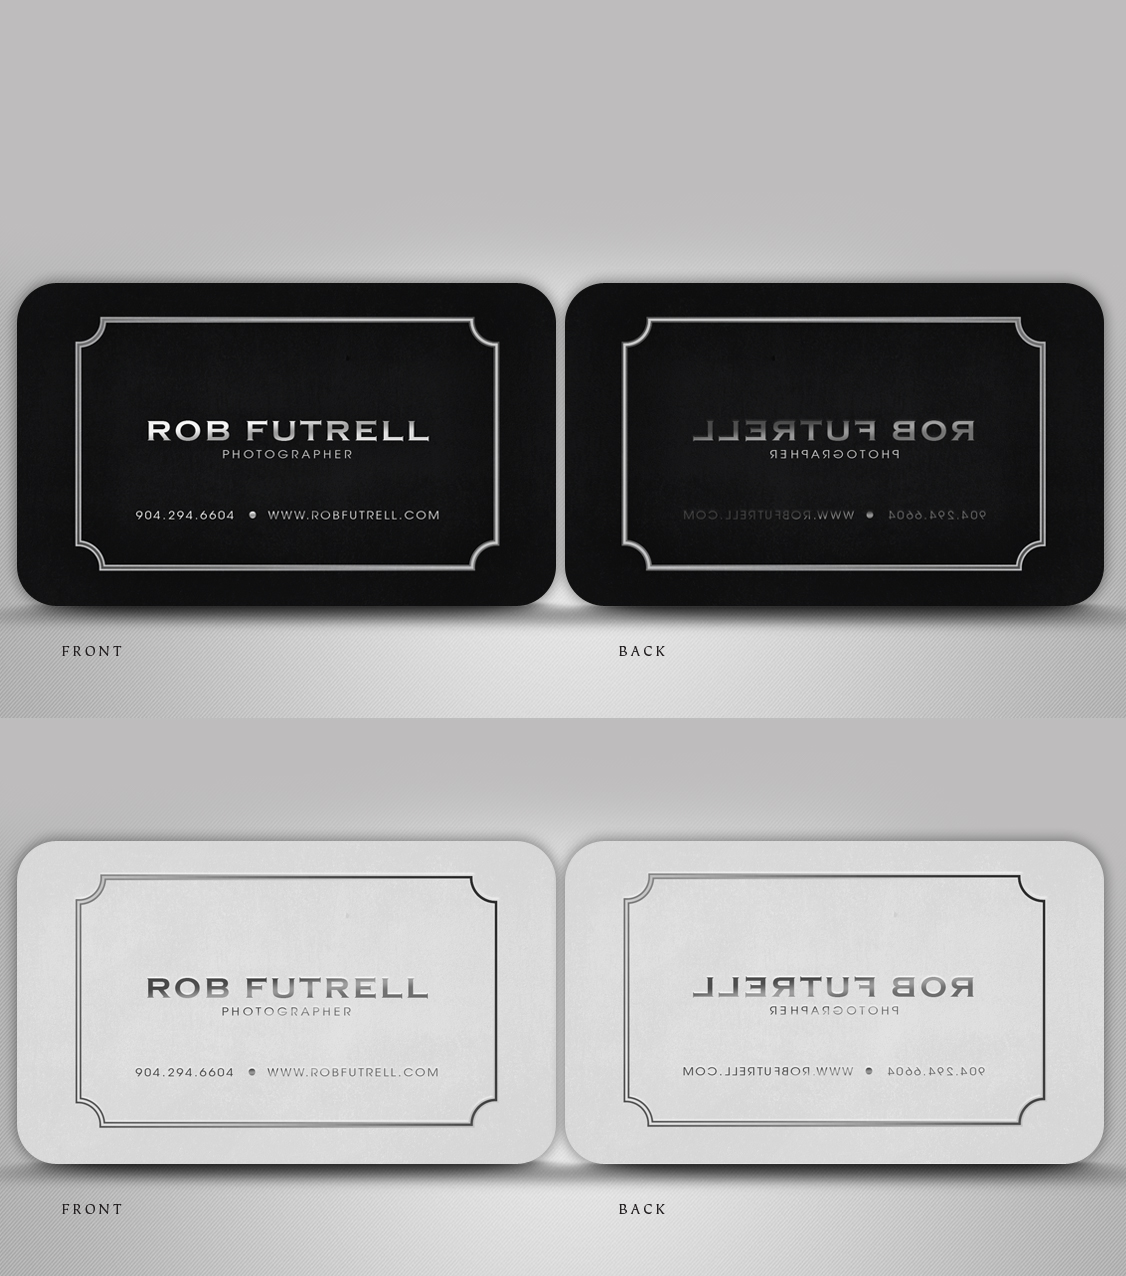 24 serious business card designs business business card design business card design by disign for photos by futrell design 528225 colourmoves Image collections